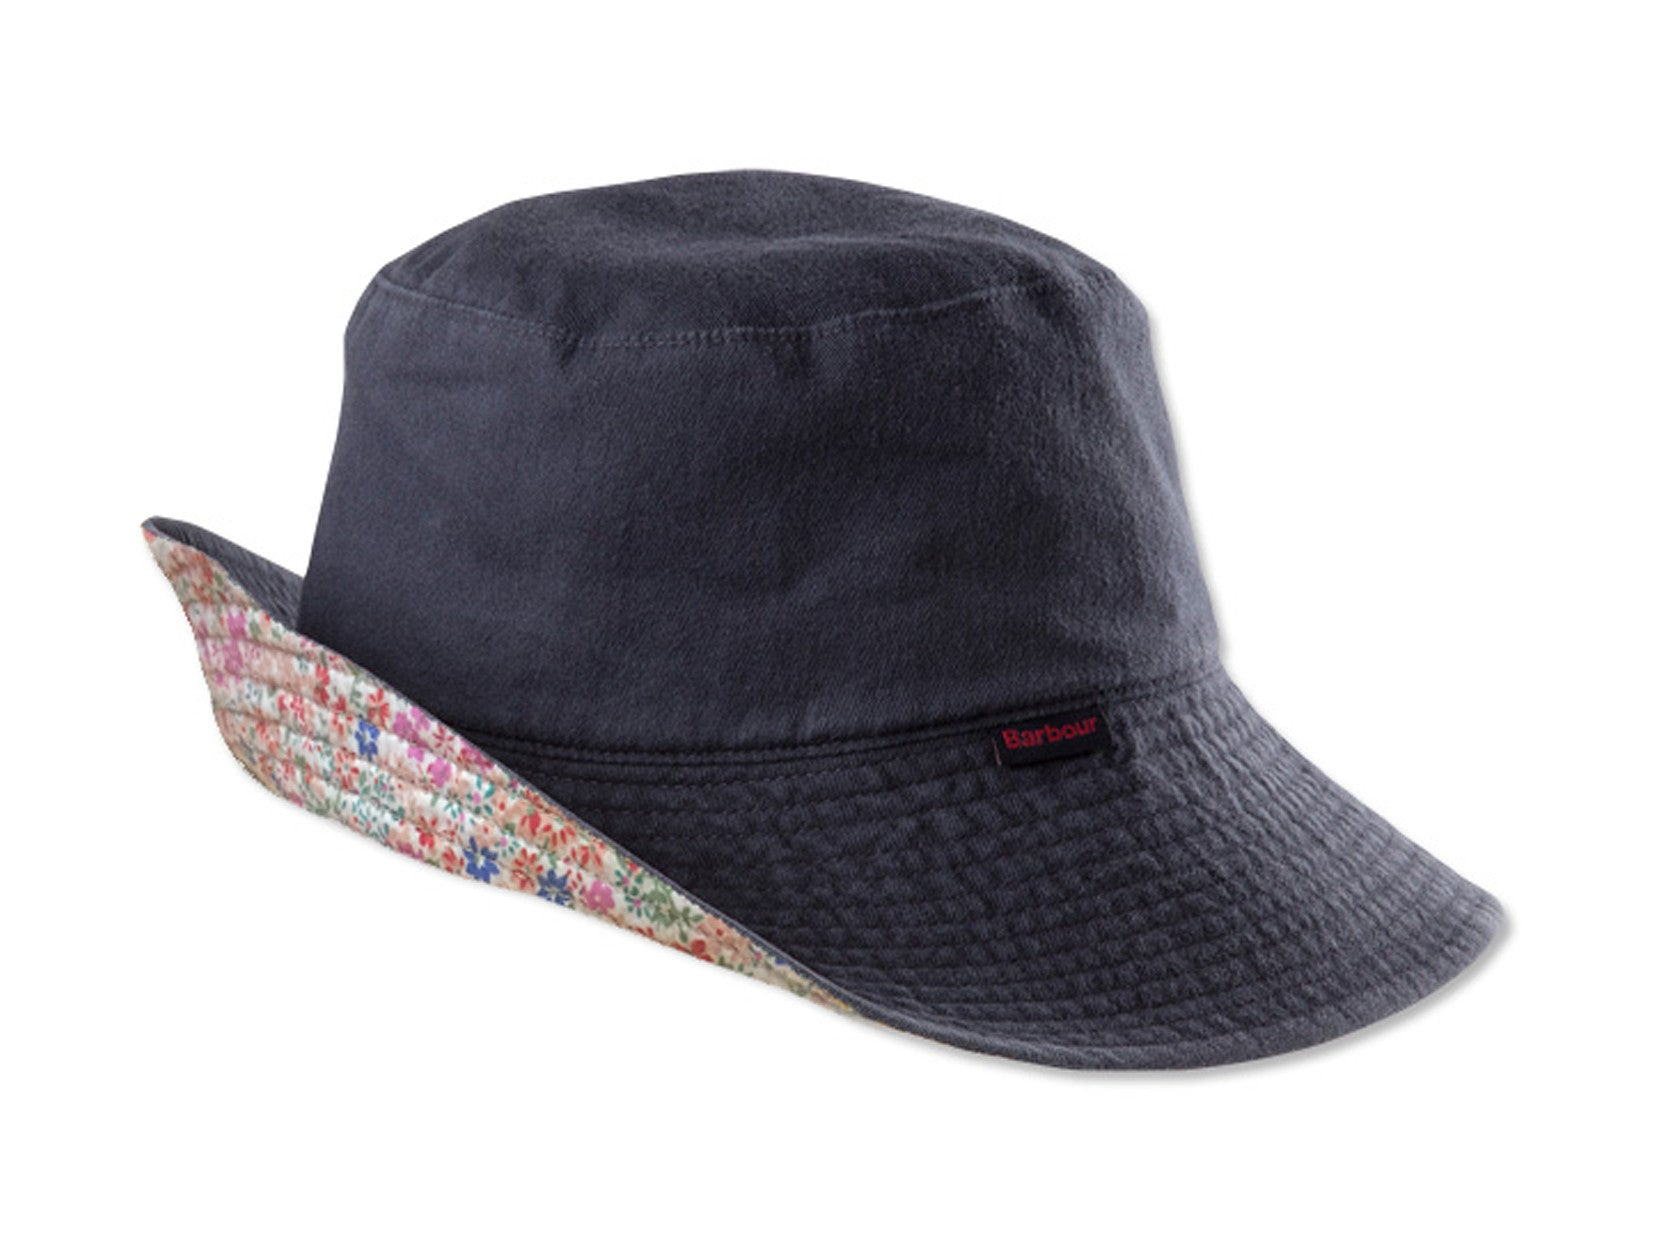 Barbour Ladies Floral Reversible Wide-brimmed Hat - North Shore Saddlery